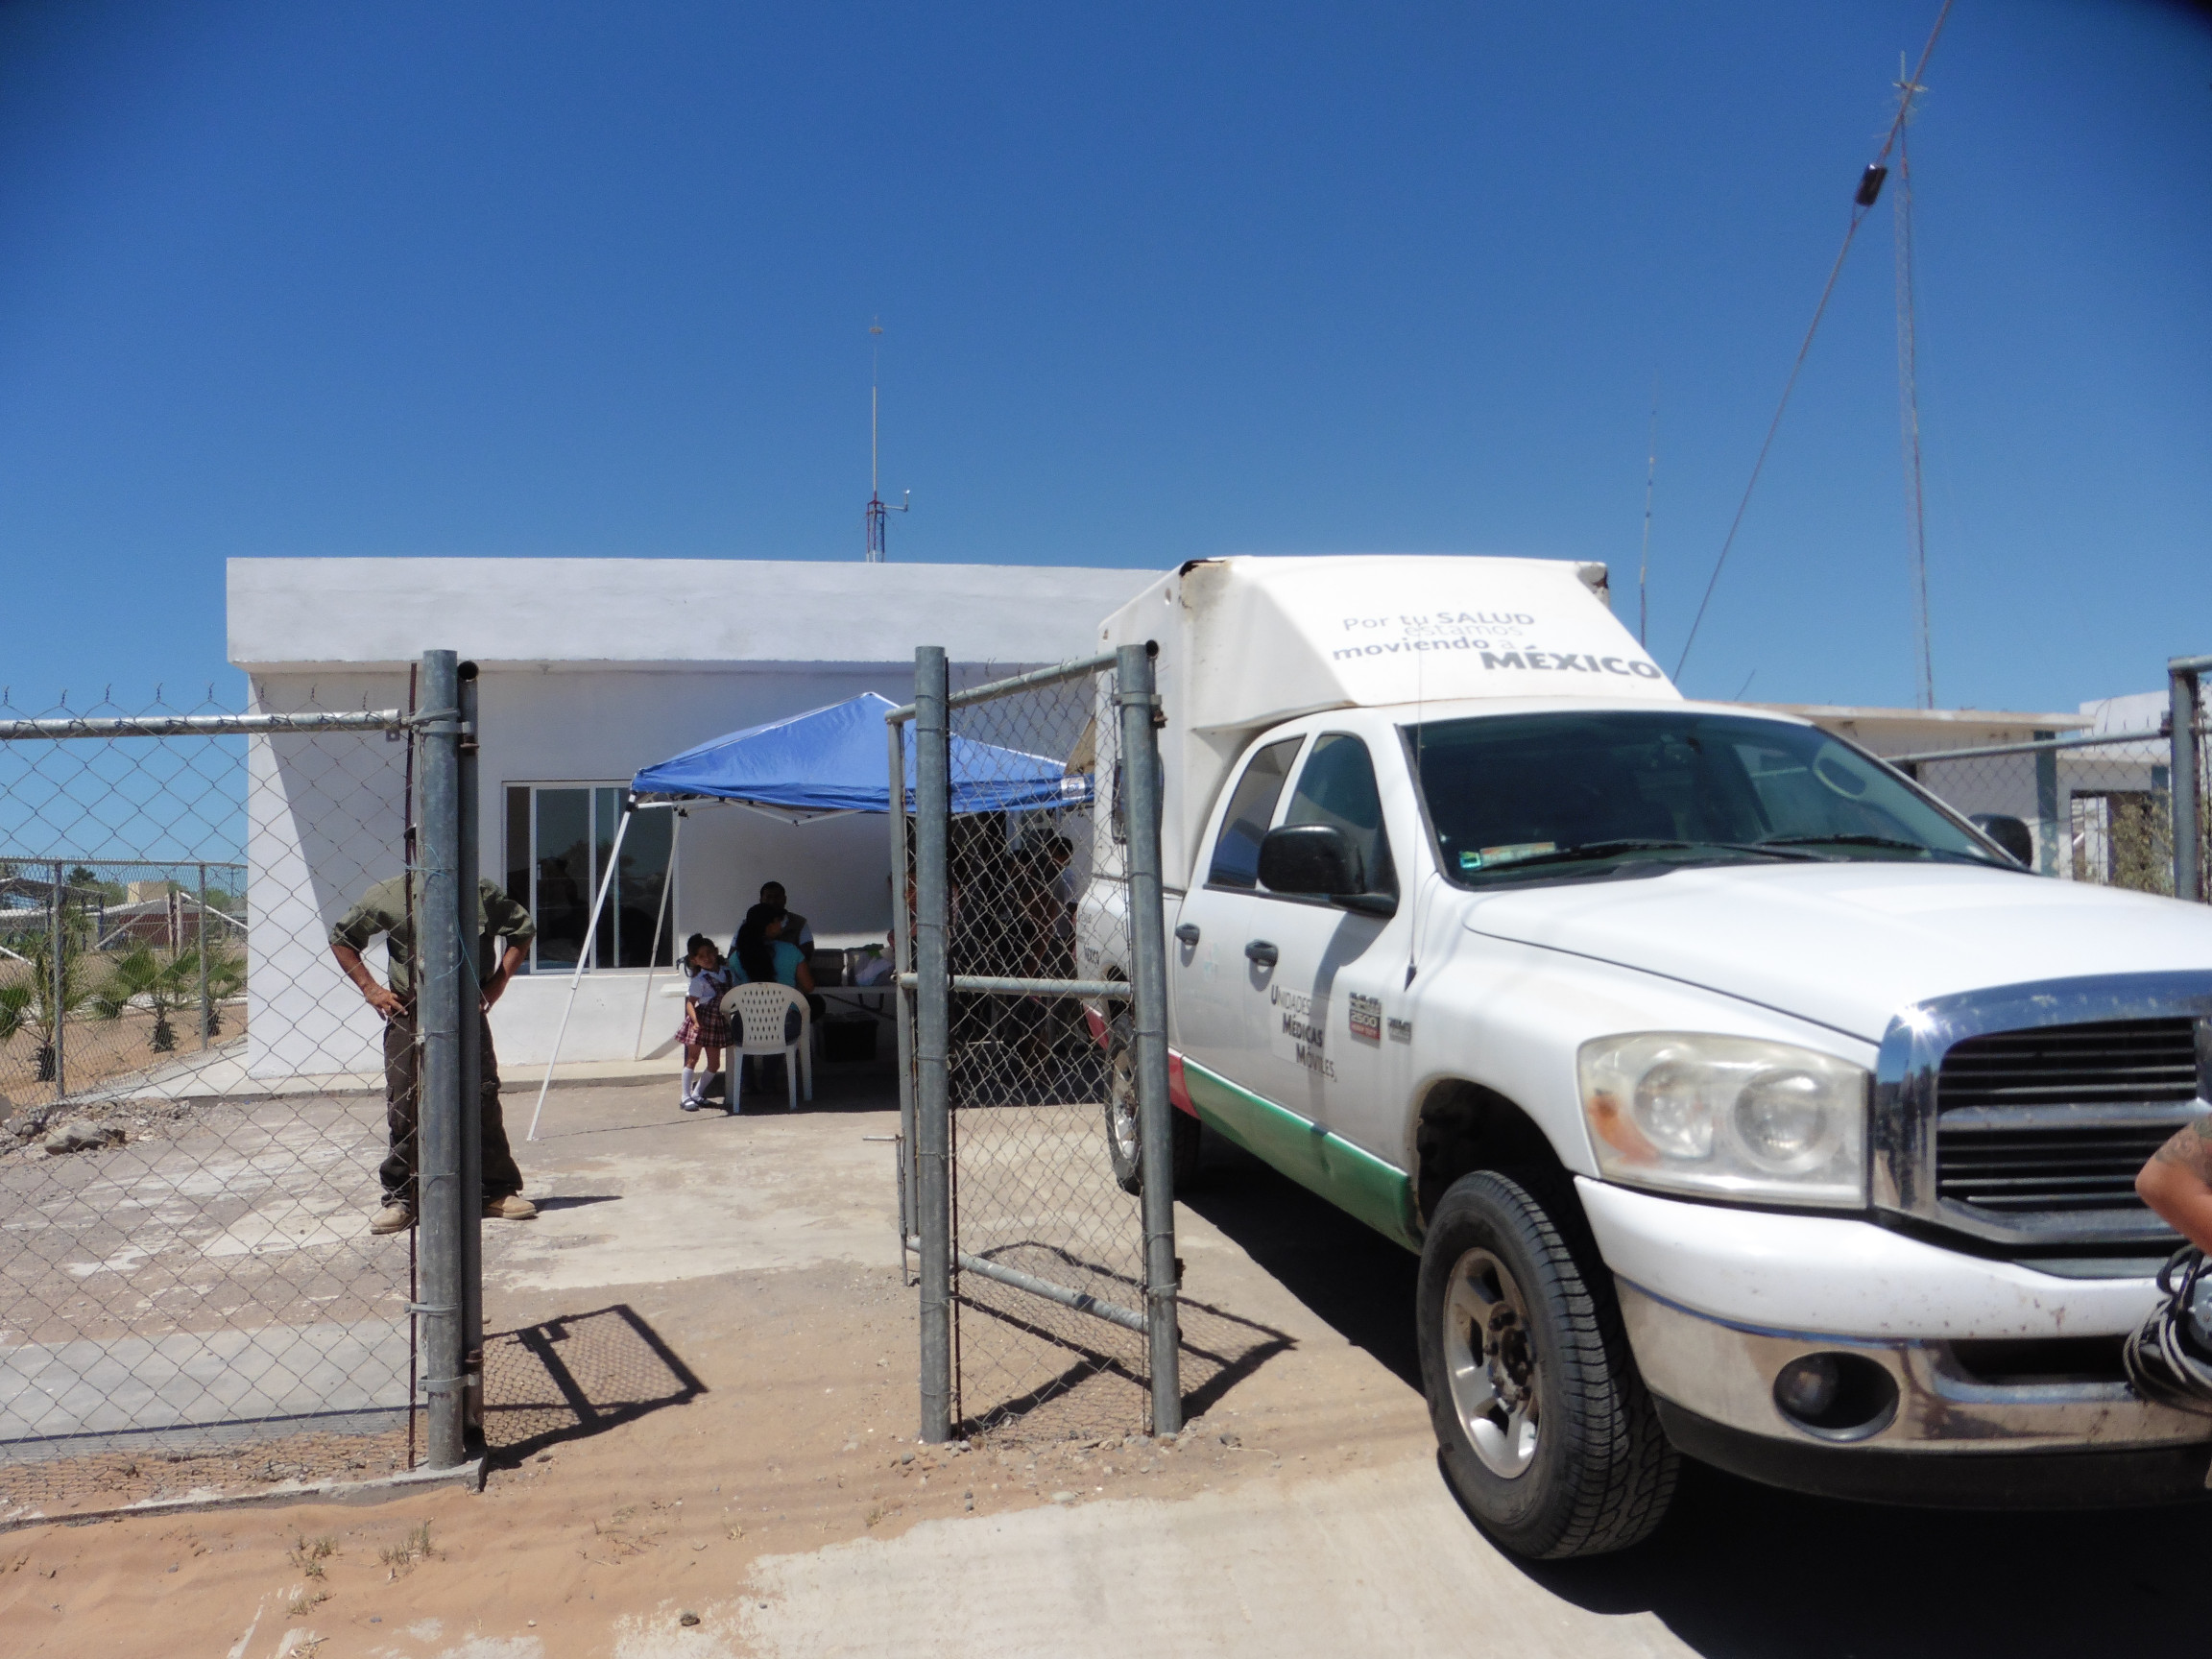 A white Dodge truck with a tailgate cover acts as a traveling office and storage closet for the local doctor on call.